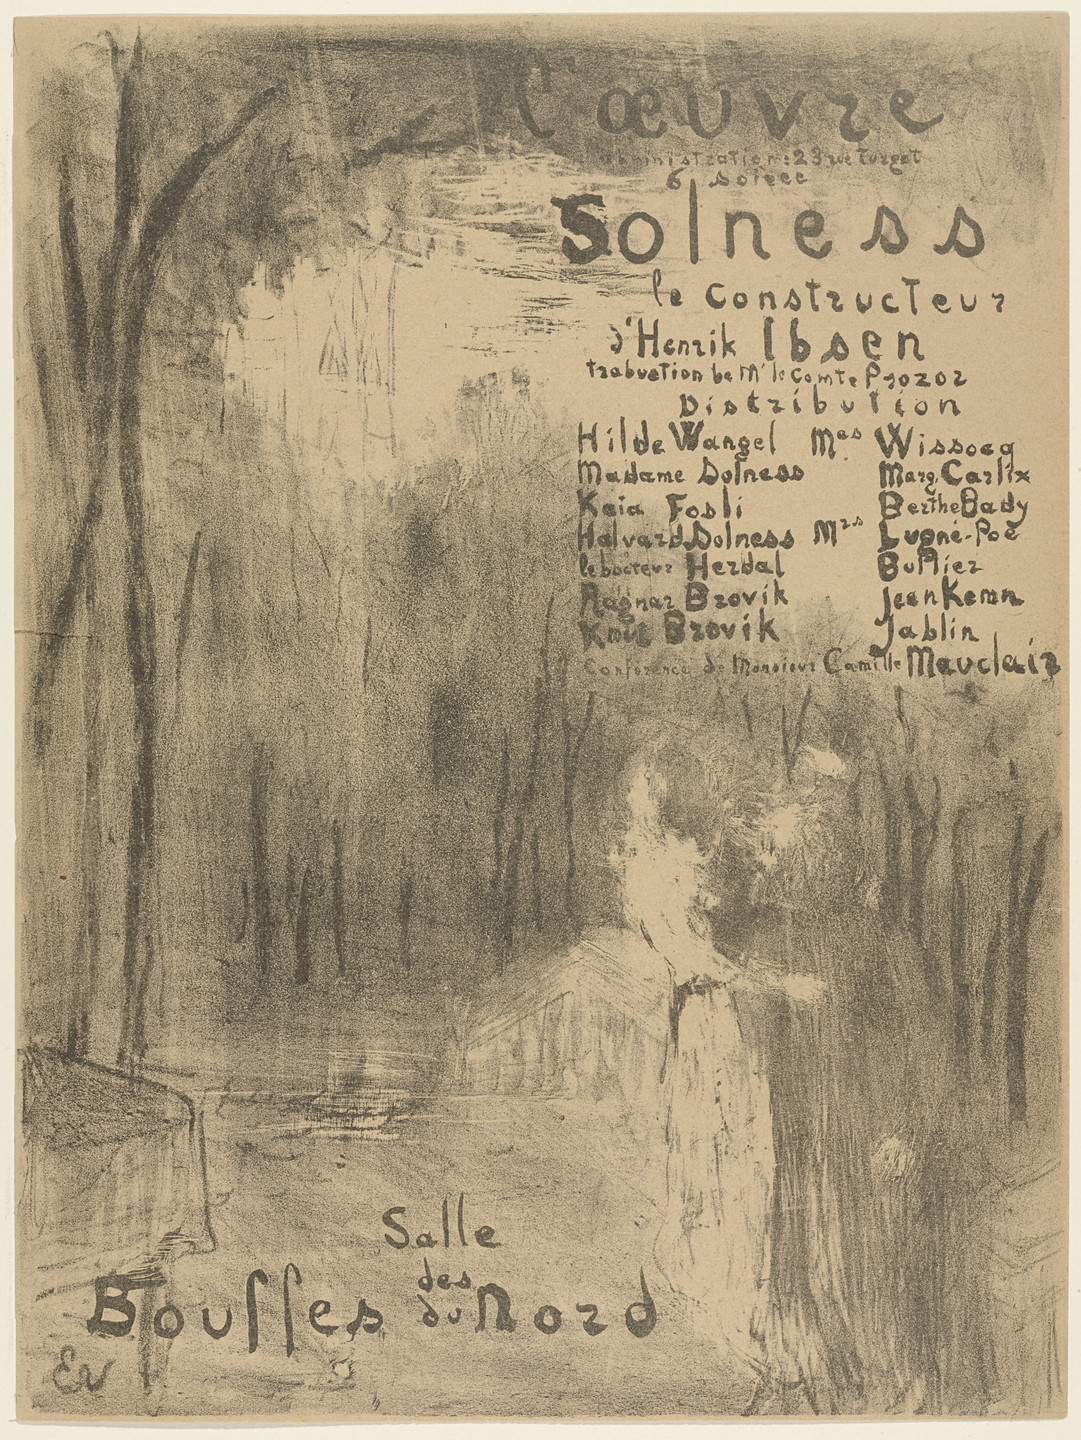 Édouard Vuillard. Program for Solness Le Constructeur. April 1894